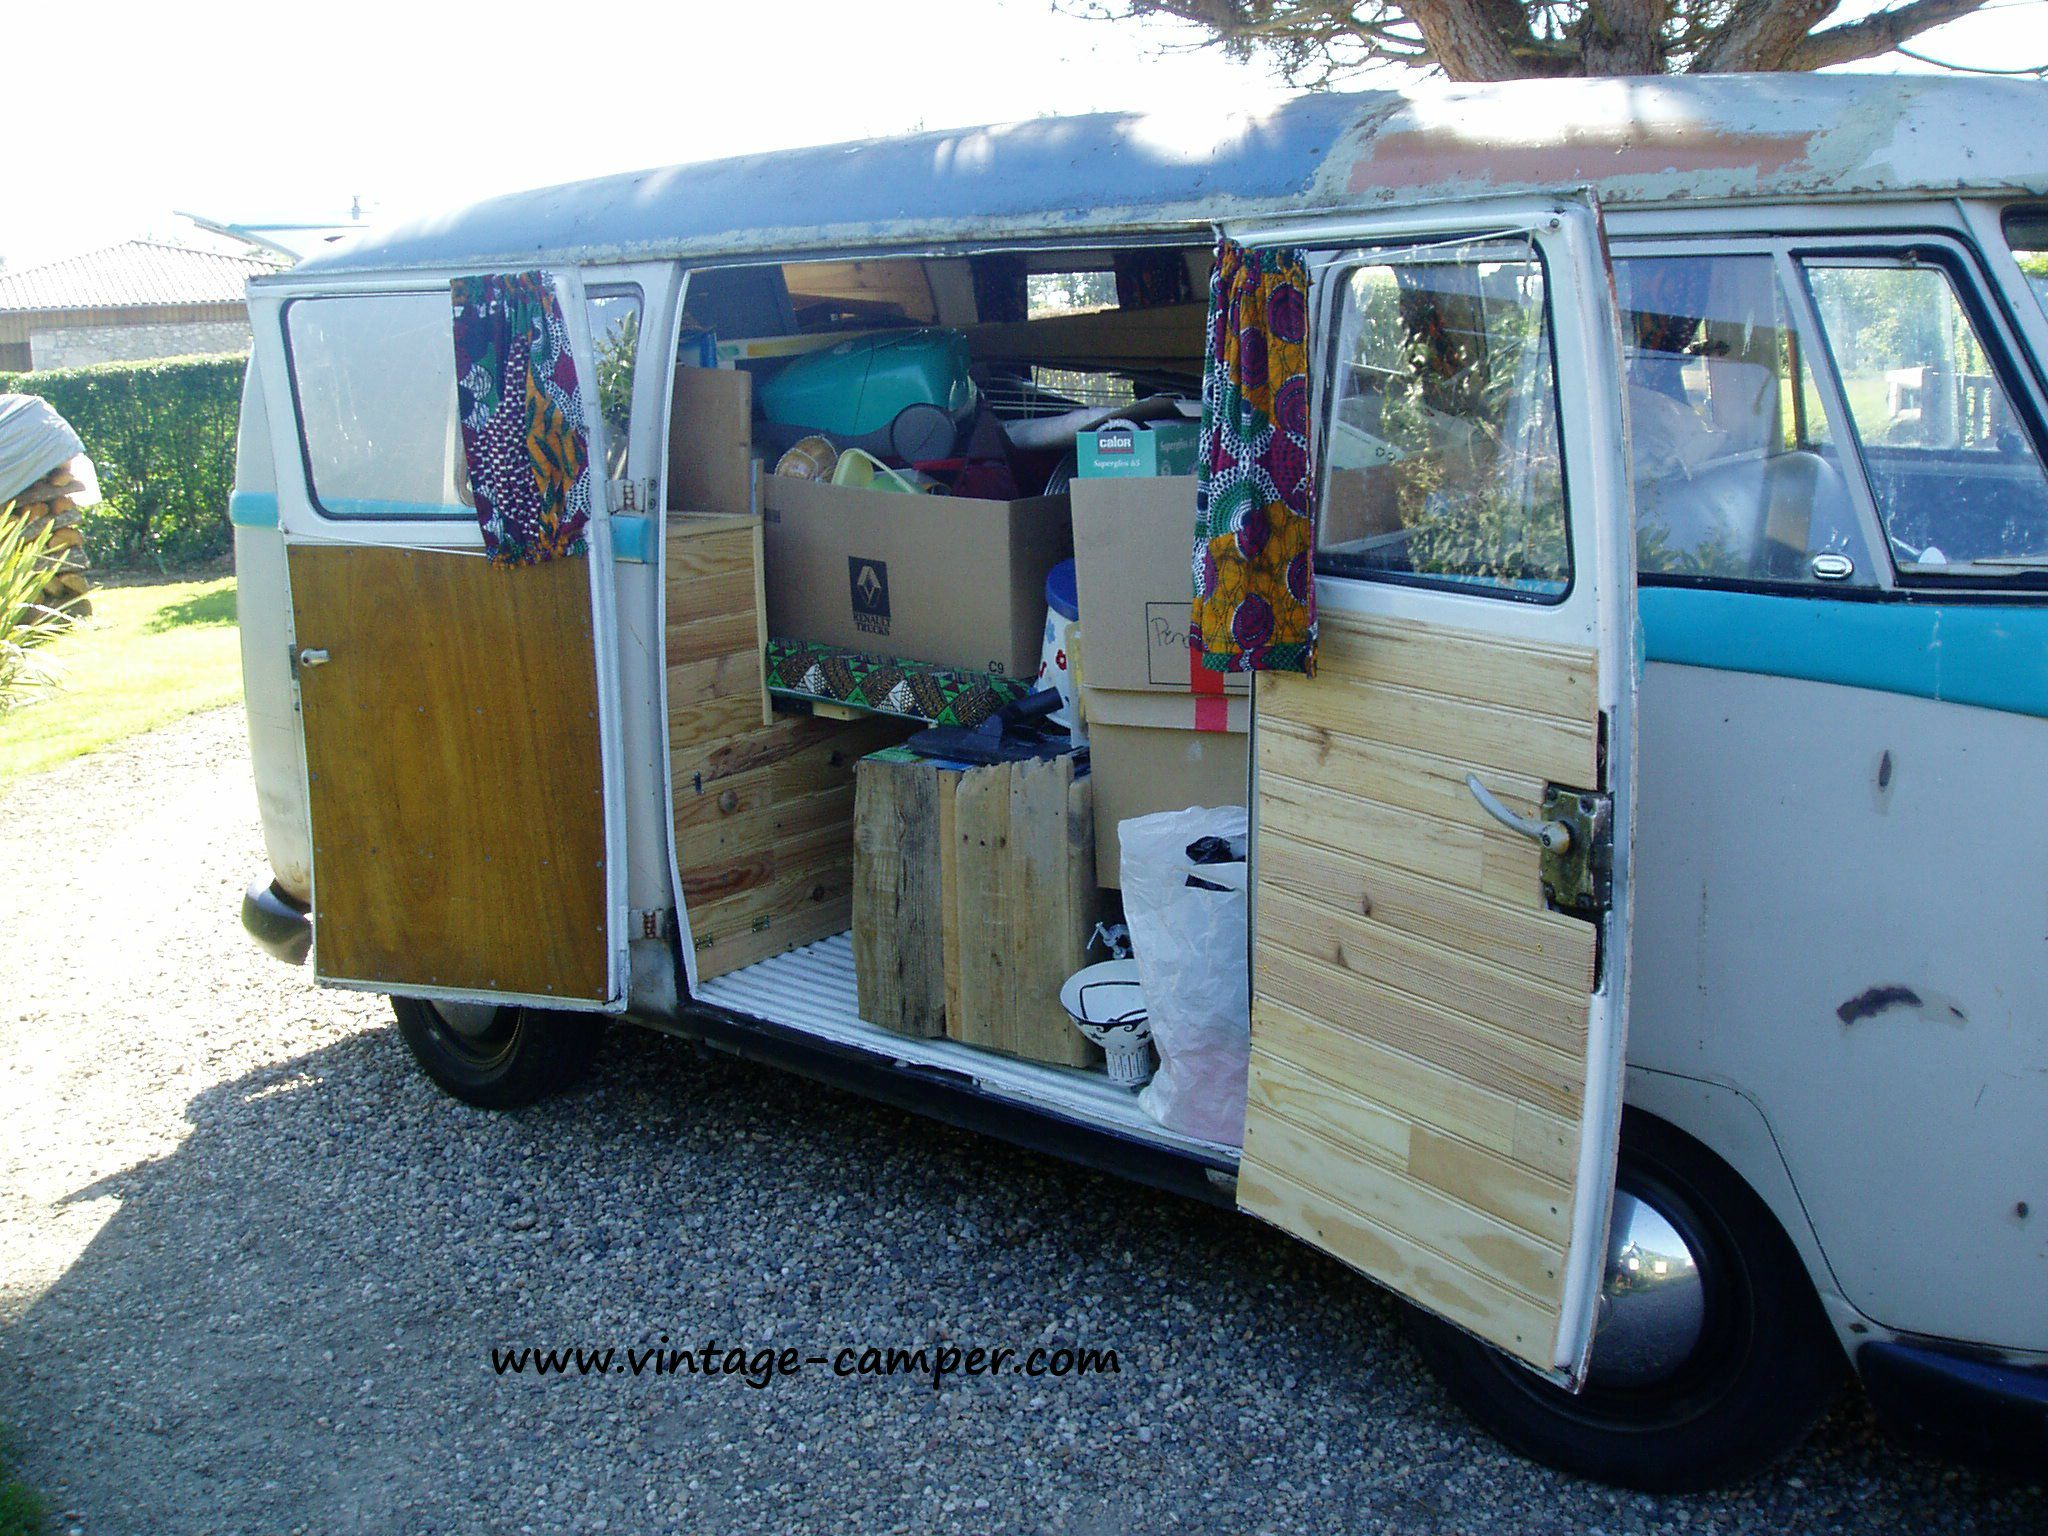 historique granpa surfer vintage camper. Black Bedroom Furniture Sets. Home Design Ideas